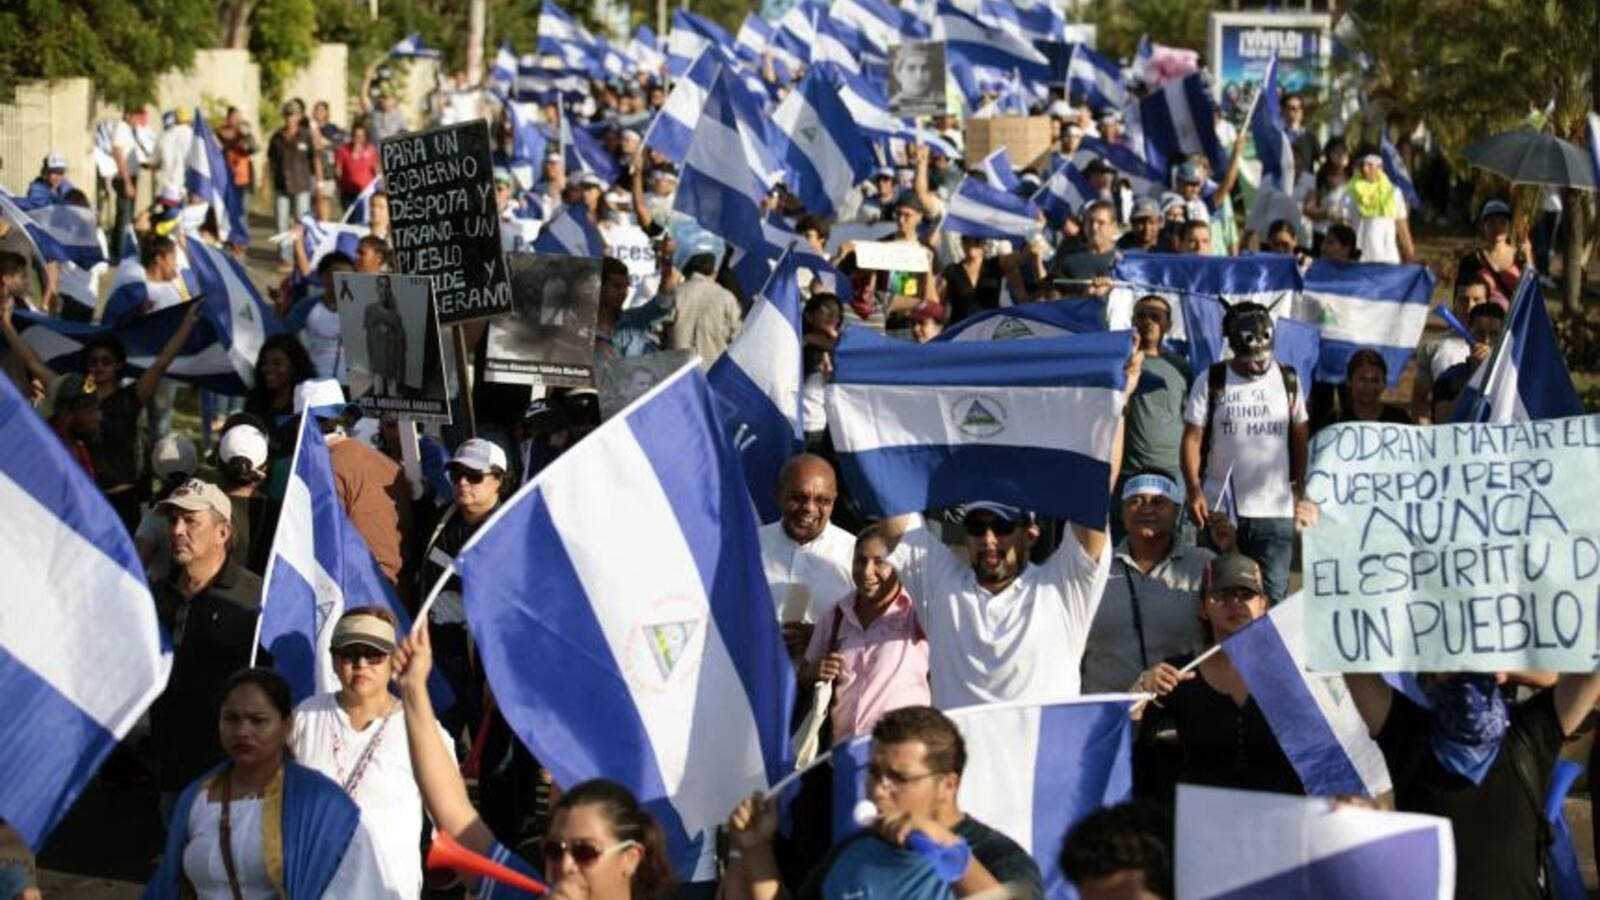 Protests erupted in Nicaragua, with violent consequences. (AFP/ File)